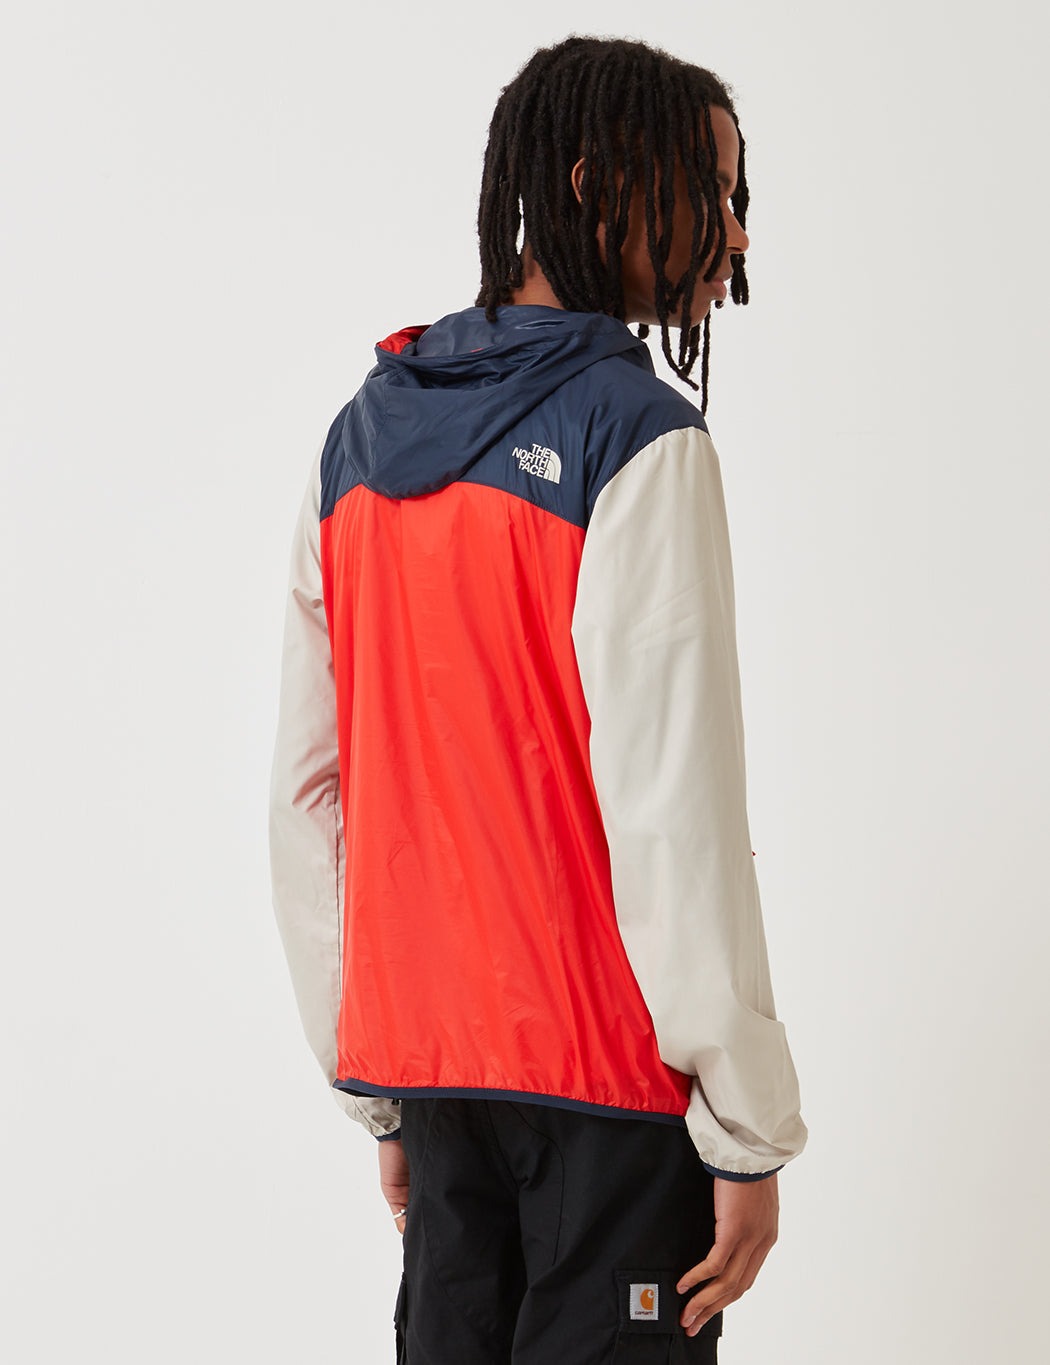 f661facc3 North Face Fanorak Pullover Jacket - Fiery Red/Urban Navy/PYTB